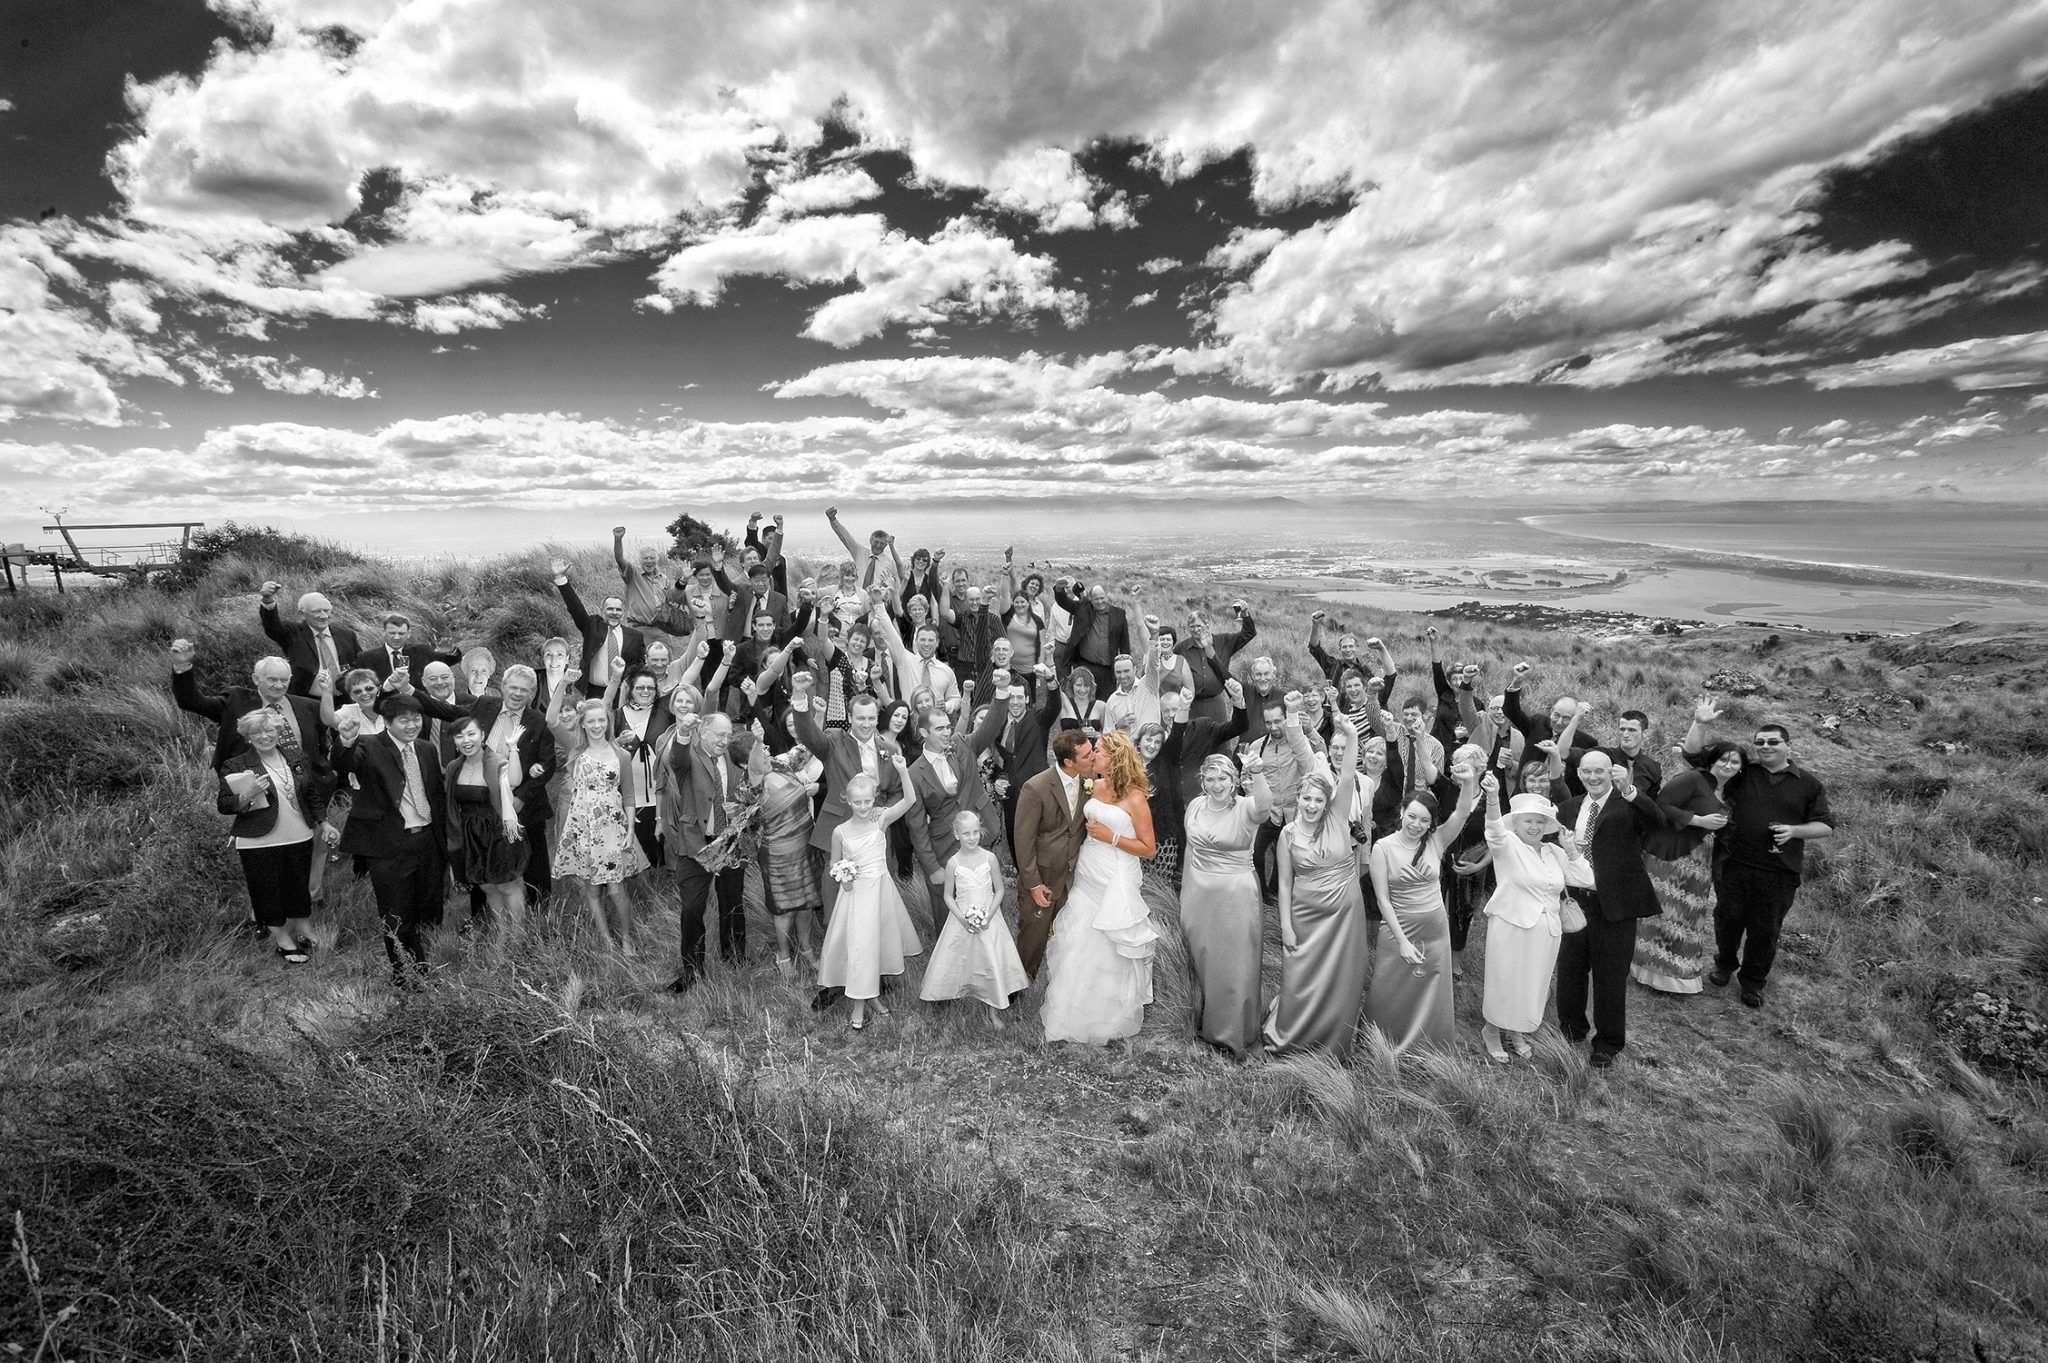 If You Re Looking For A Unique Venue Your Wedding Reception Conference Business Events Or Gala Dinner Christchurch Gondola S Mountain Top Function